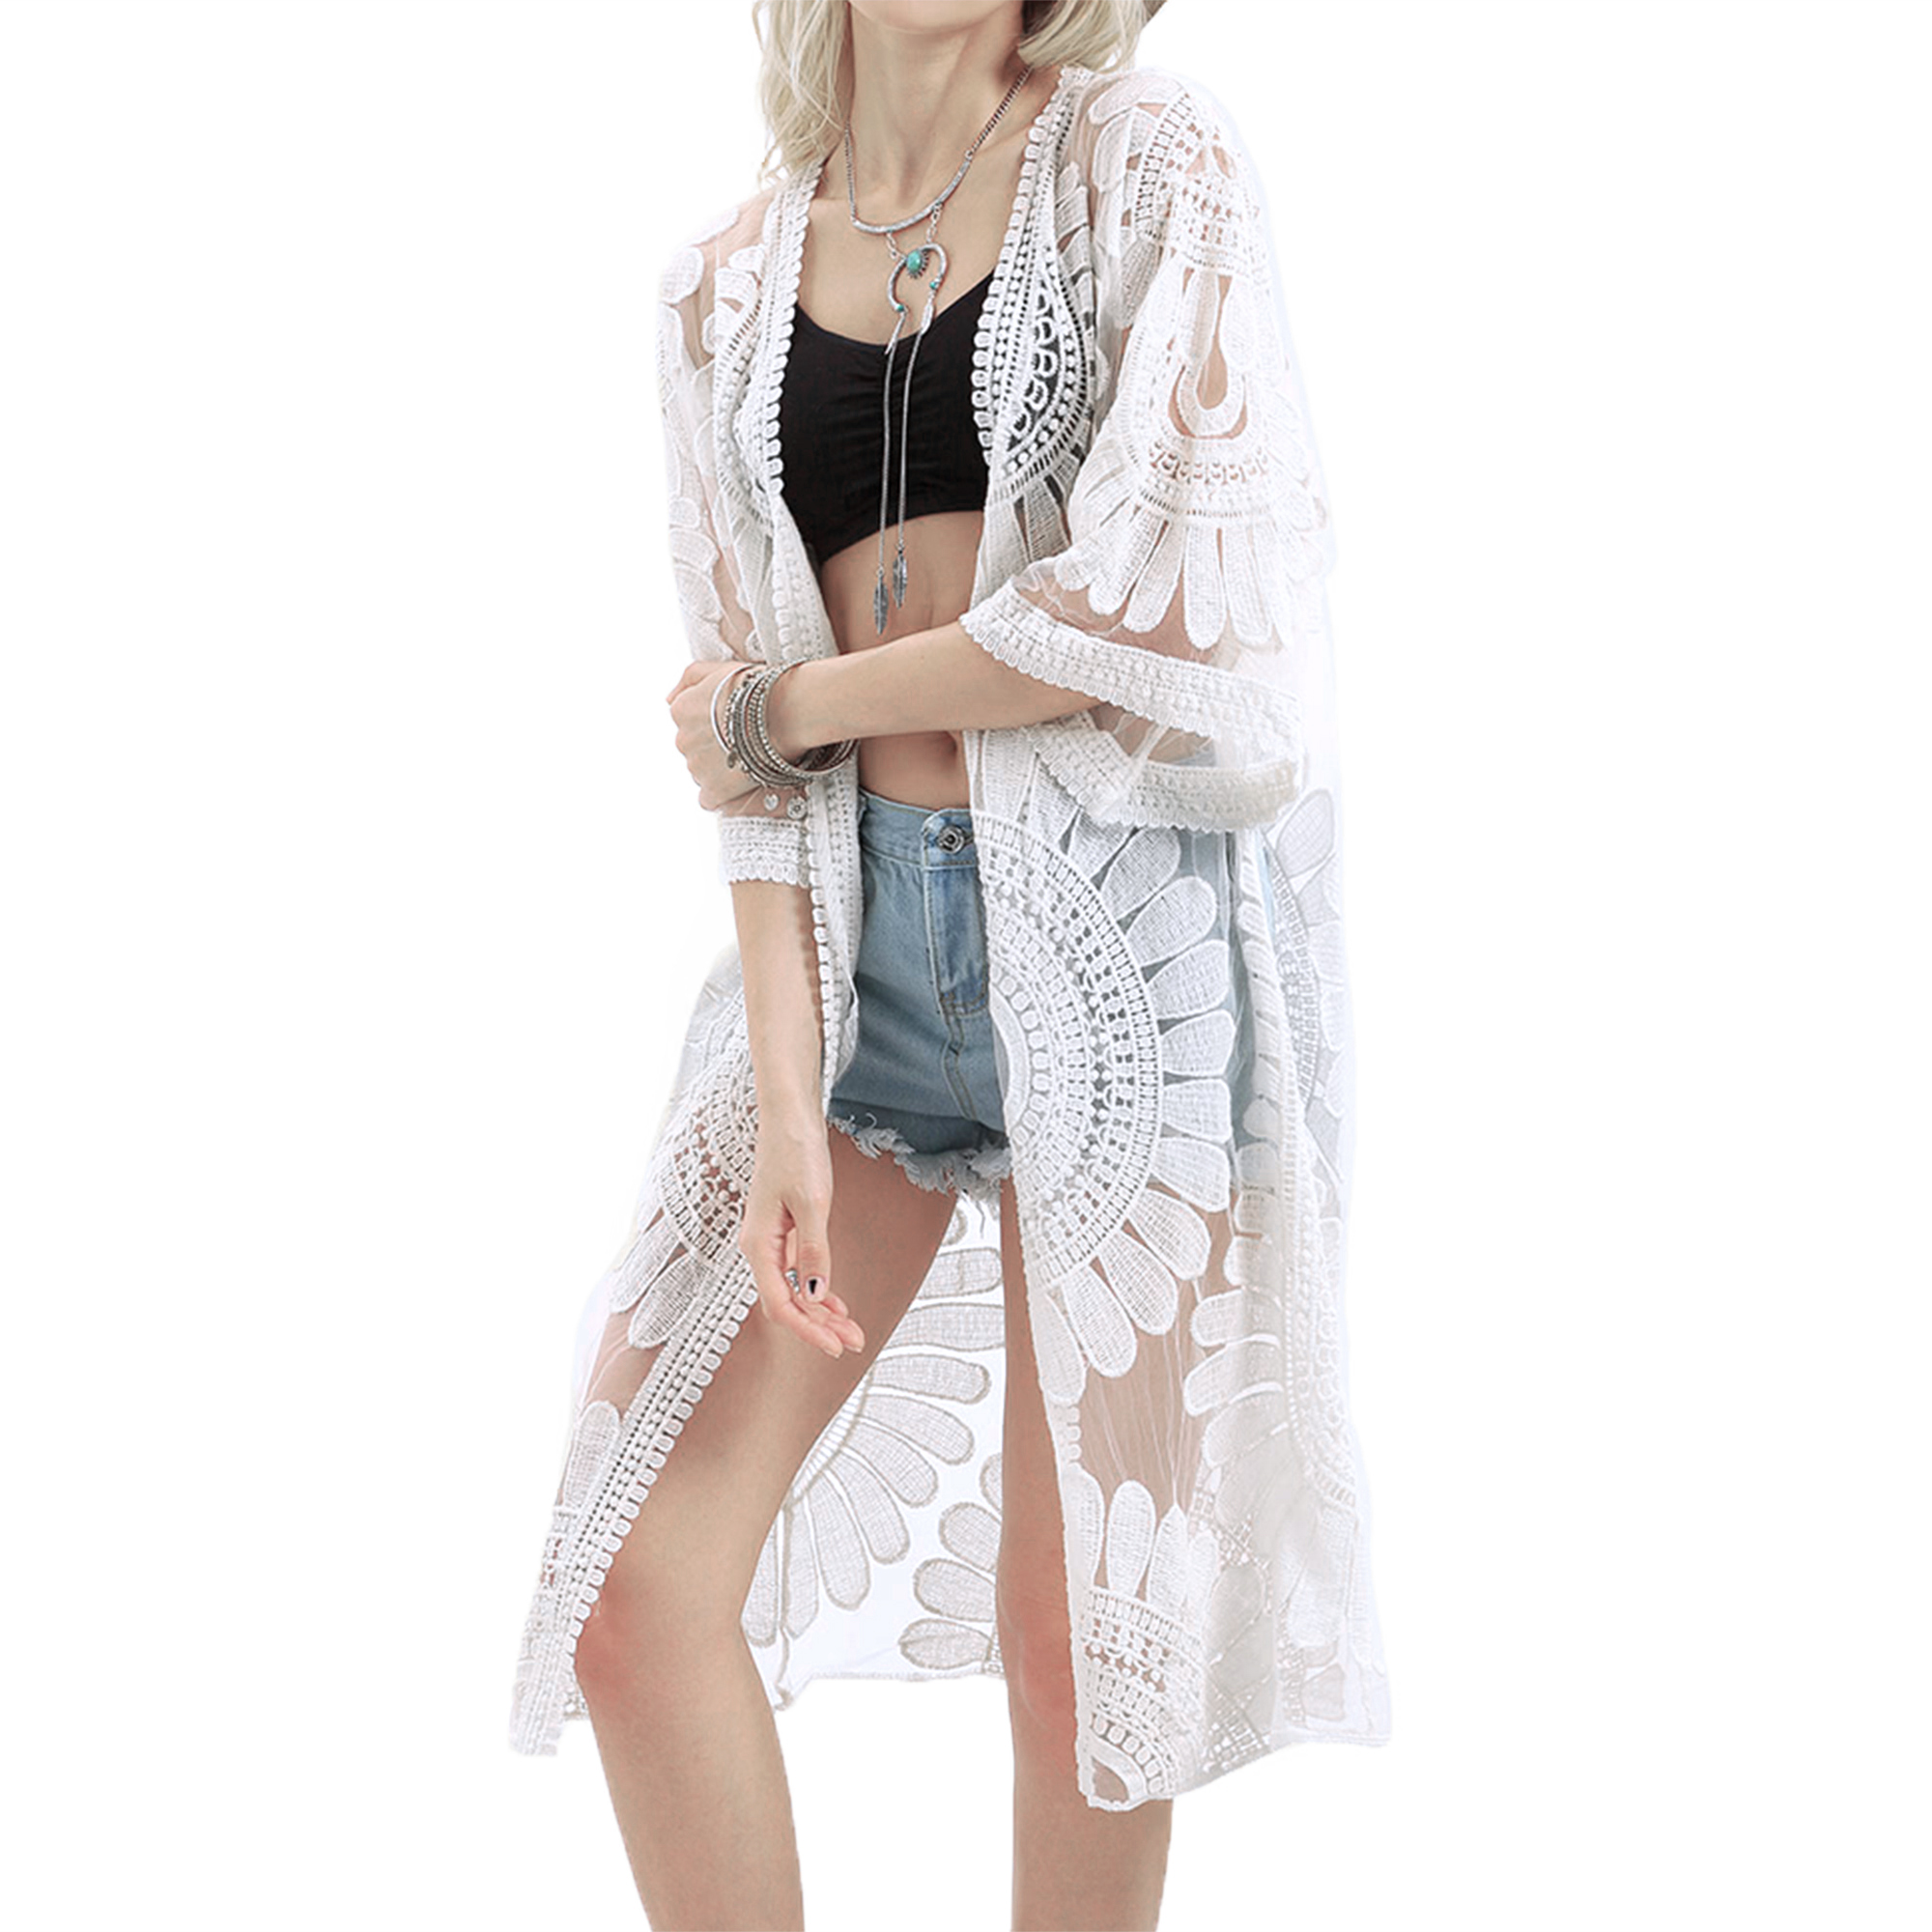 698dc81be0bfa Boho Chic White Flowers with White Lace Kimono Inspired Cover Up or ...